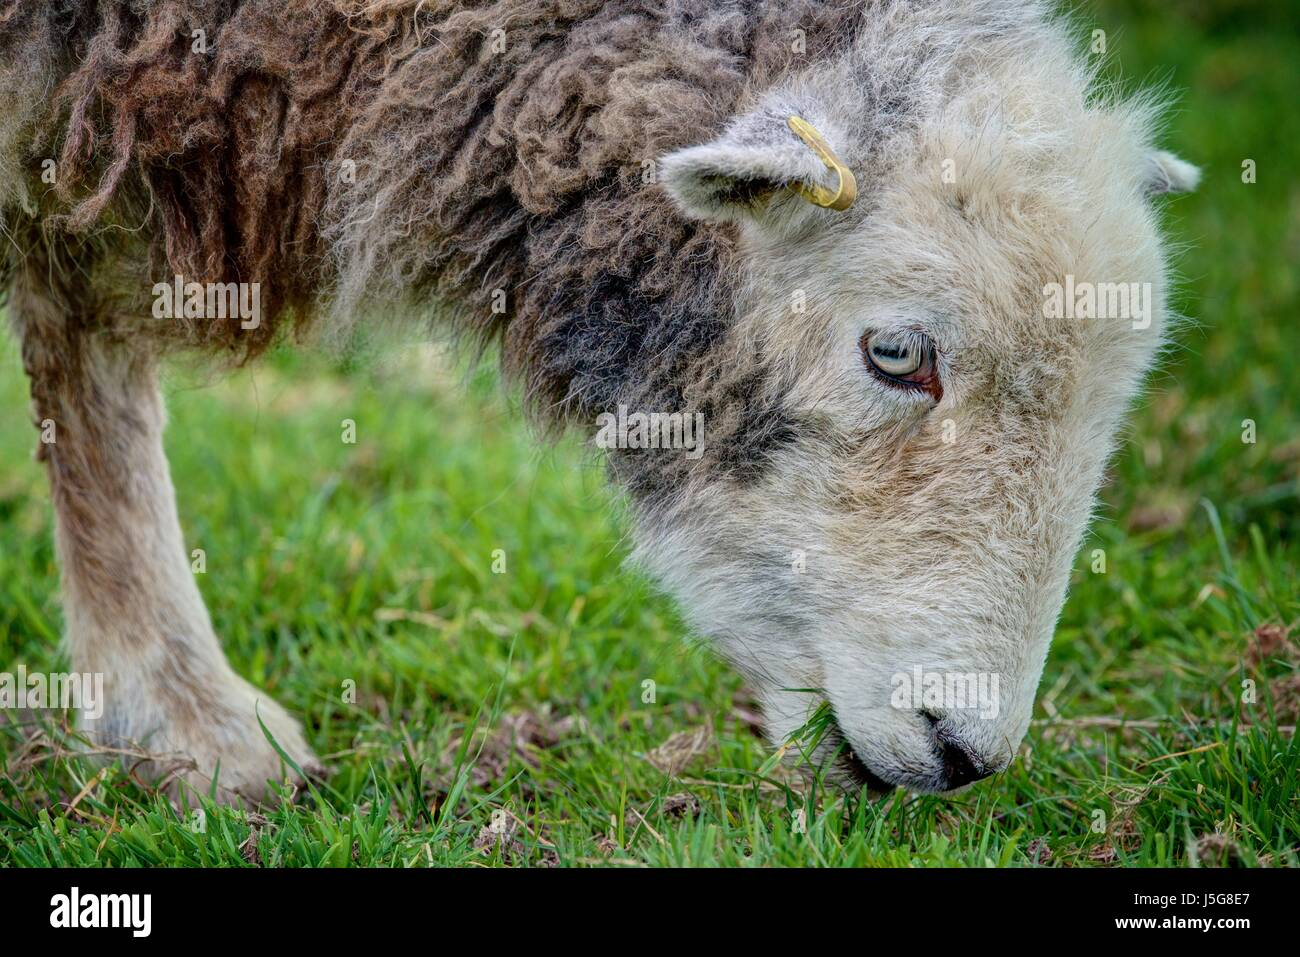 A close up portrait of a sharply rendered Herdwick ewe browsing on a green grass field. The sheep are respected - Stock Image